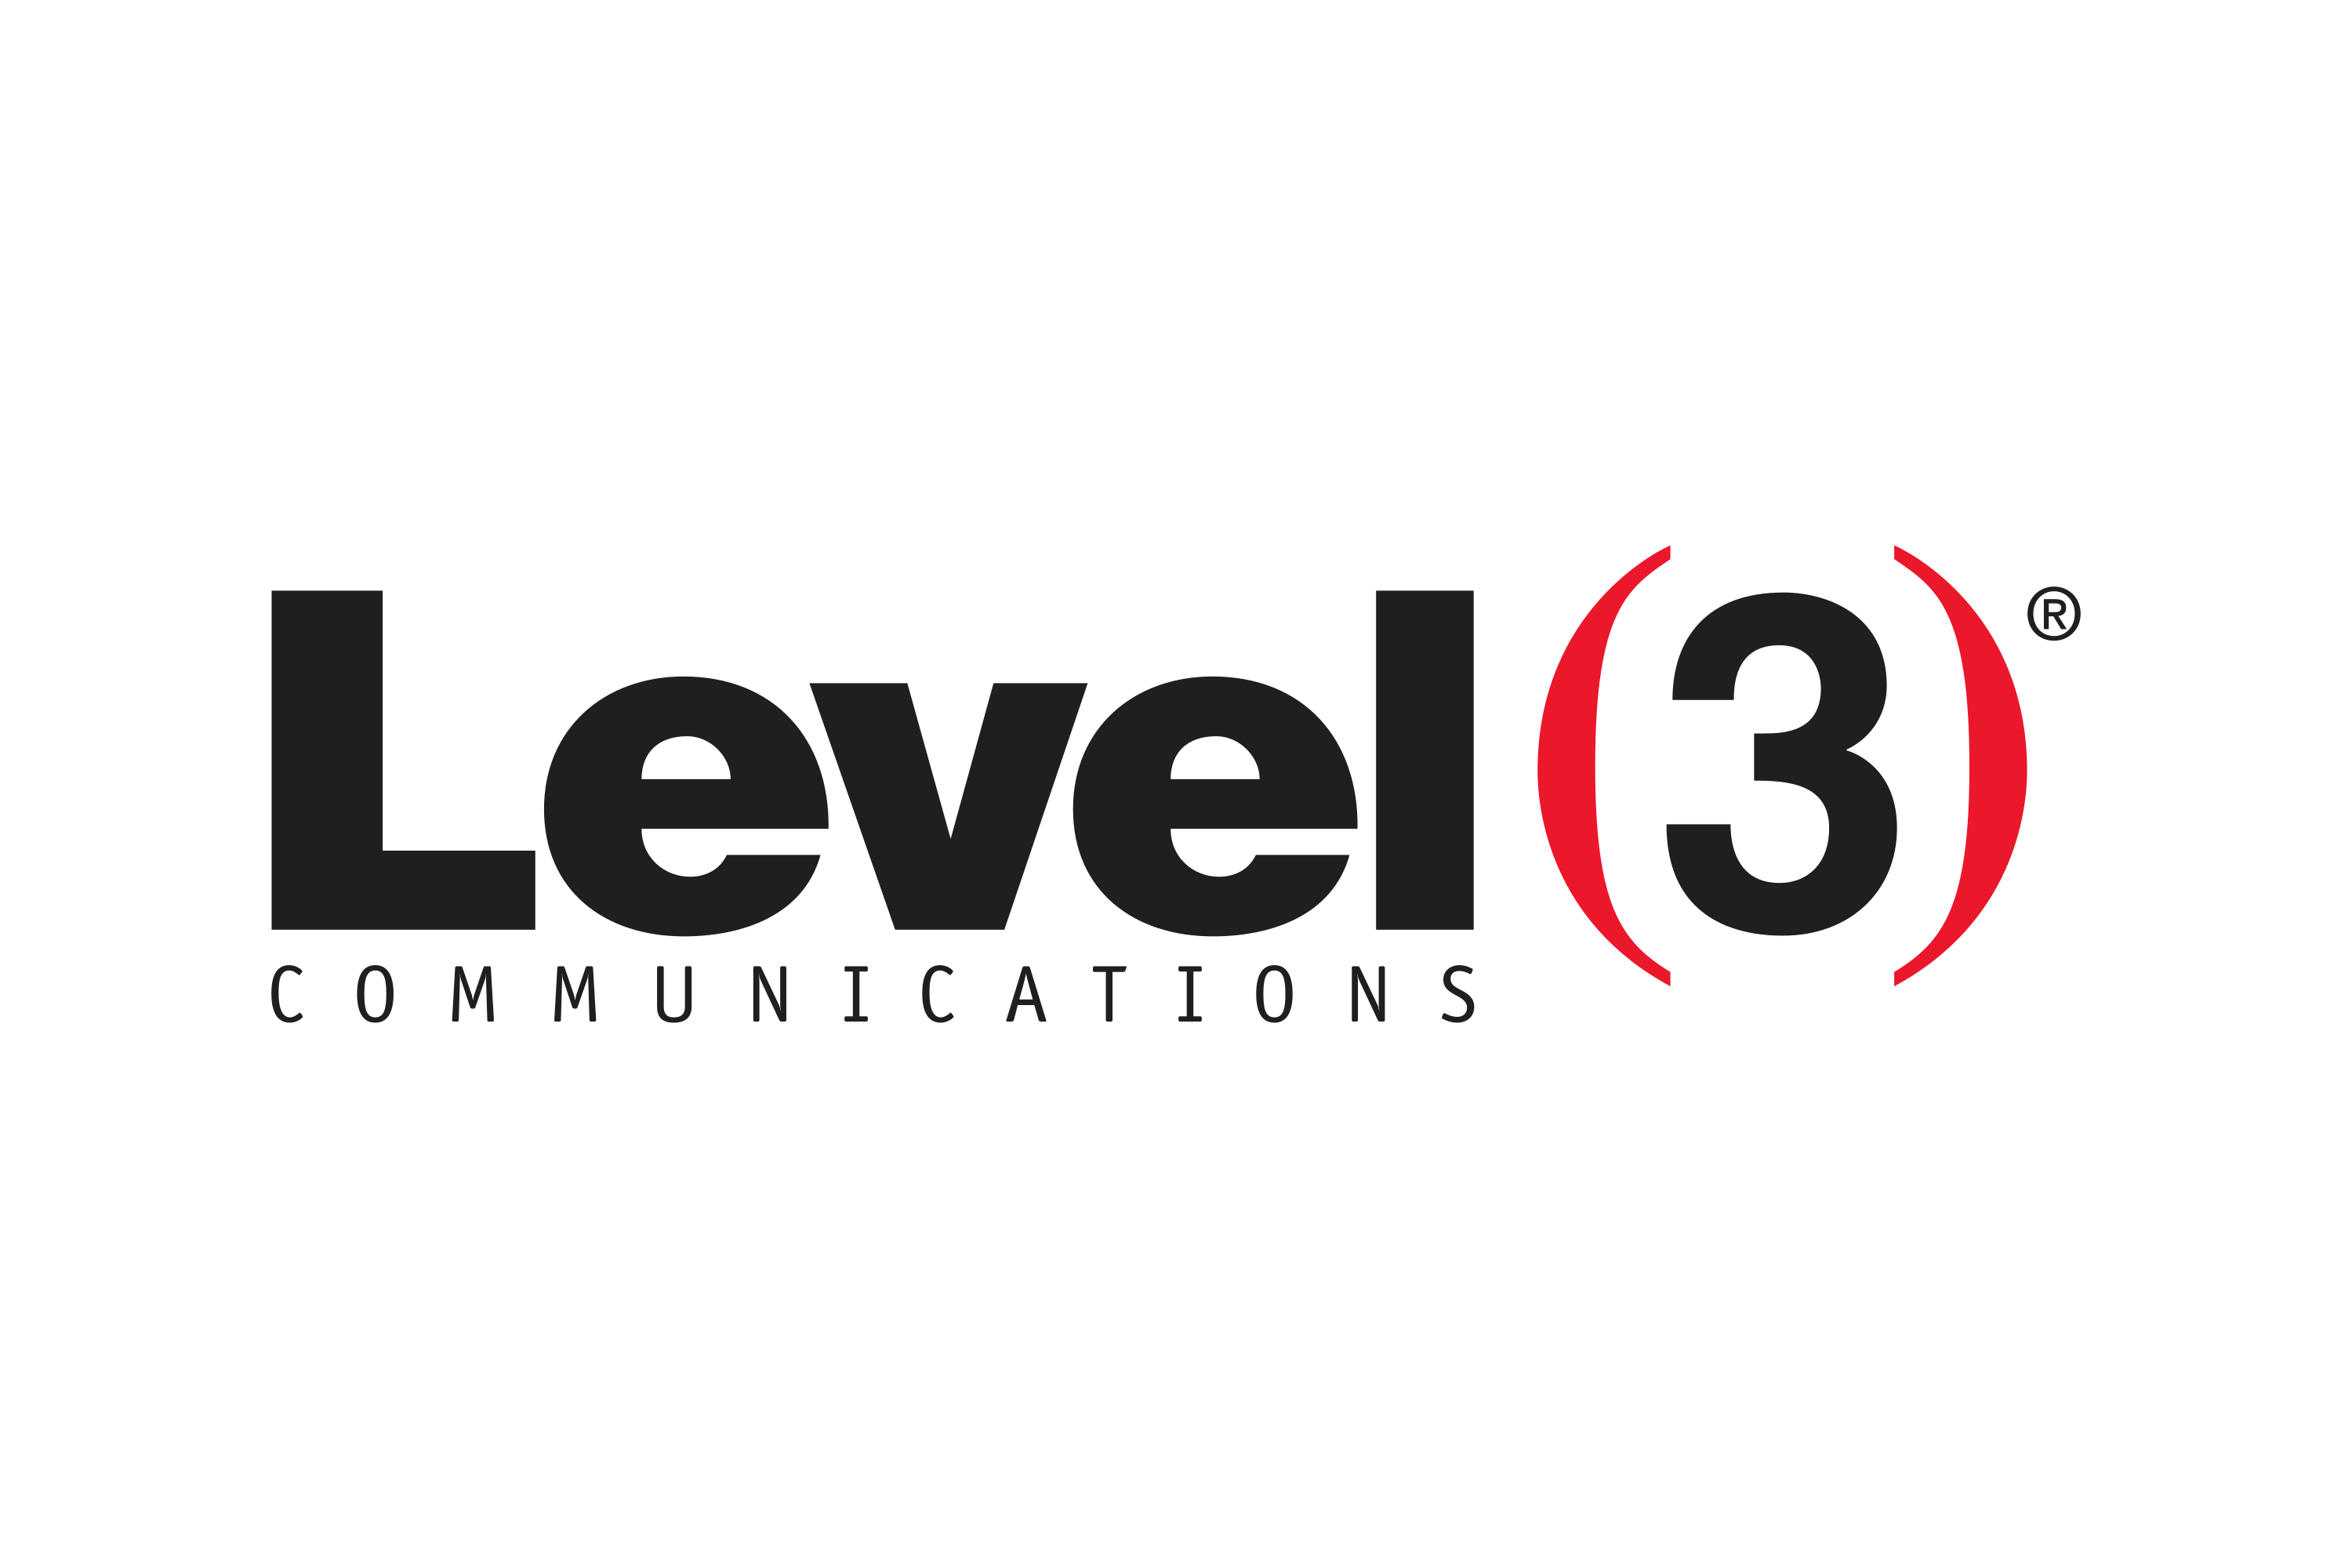 Download Level 3 Communications Logo in SVG Vector or PNG